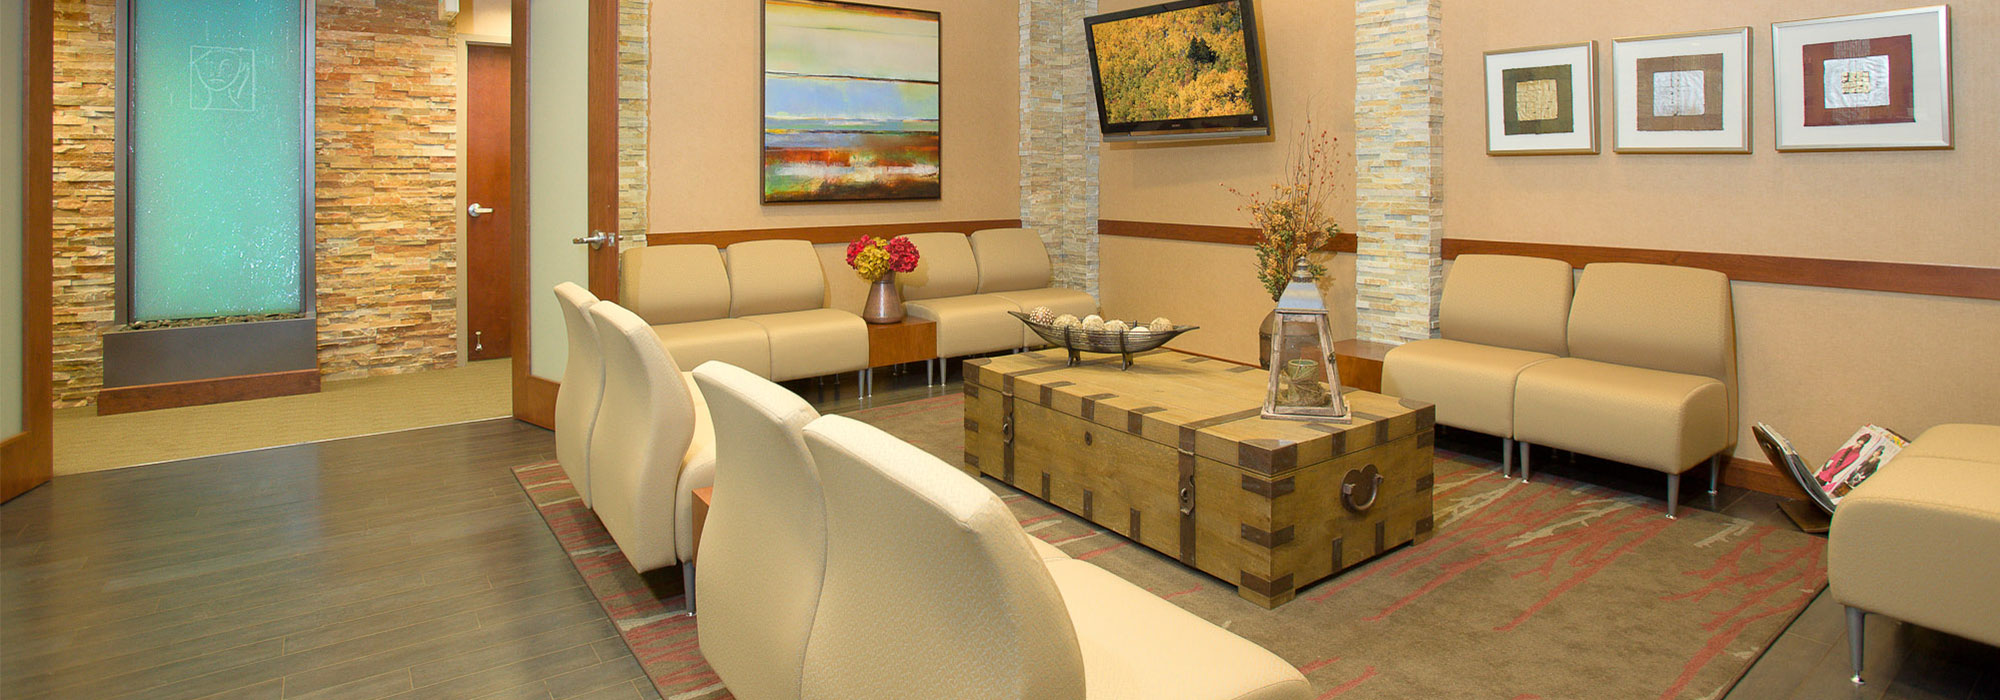 park meadows cosmetic surgery office